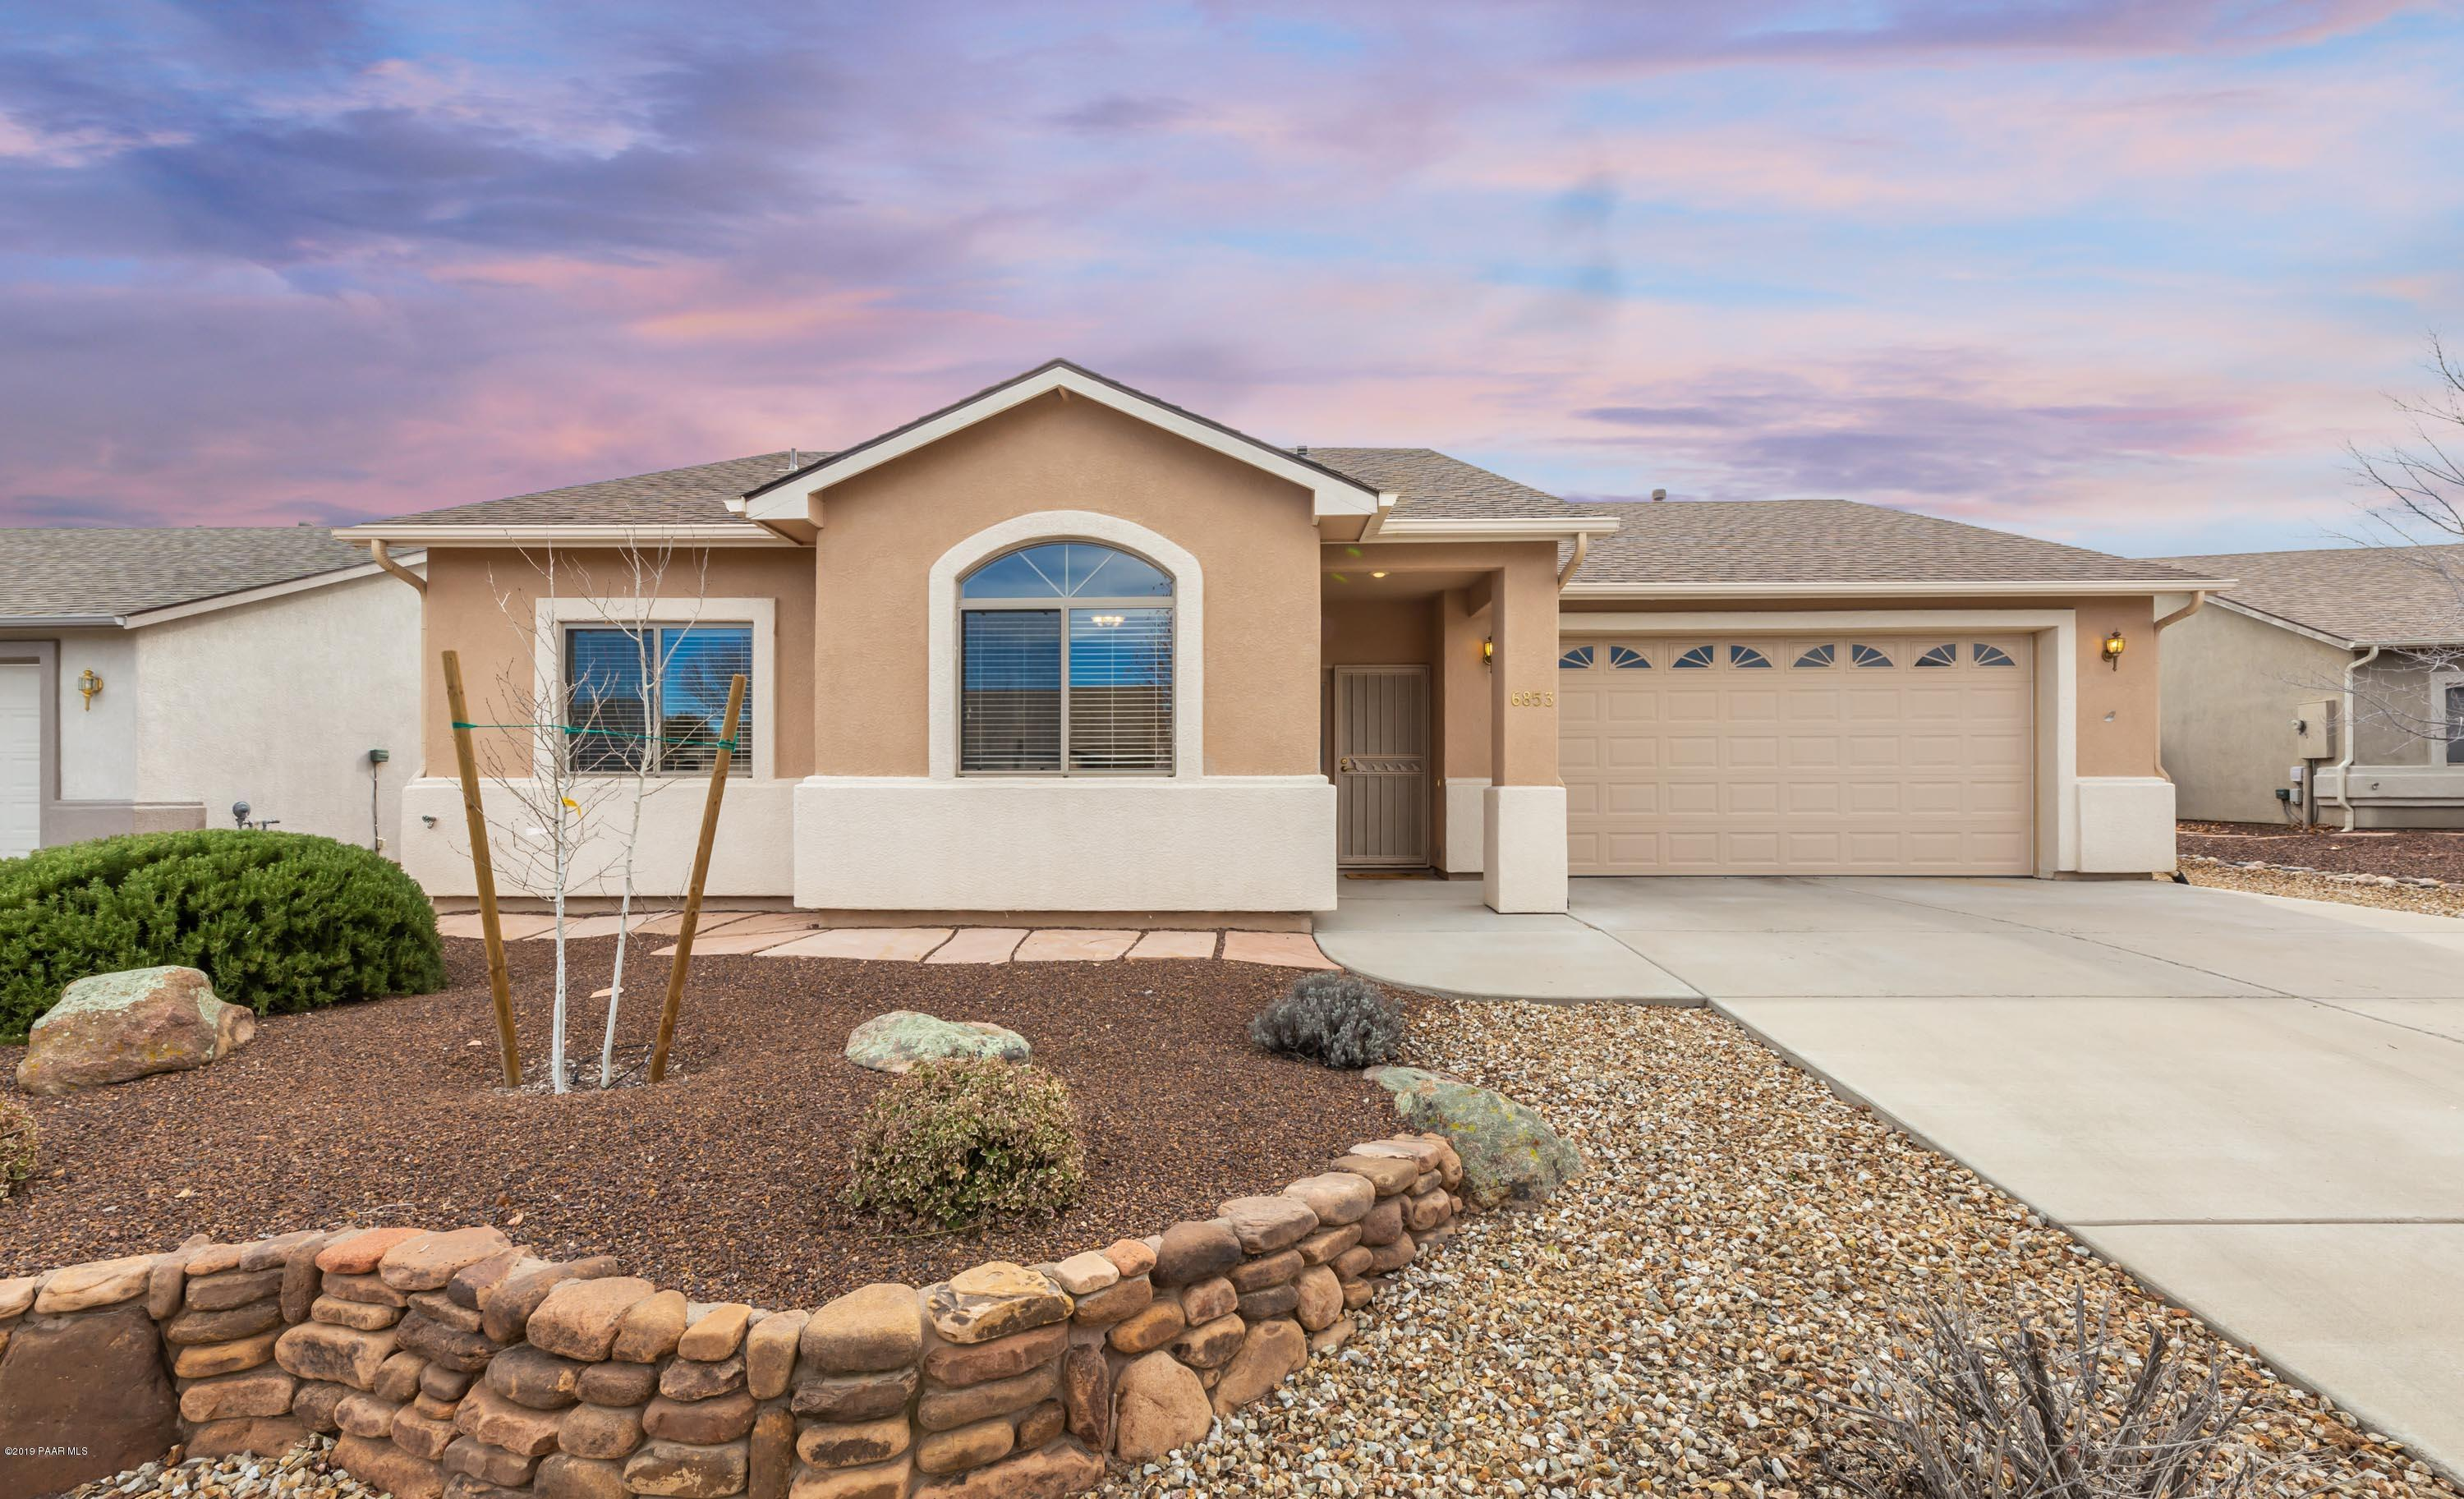 Photo of 6853 Kilkenny, Prescott Valley, AZ 86314